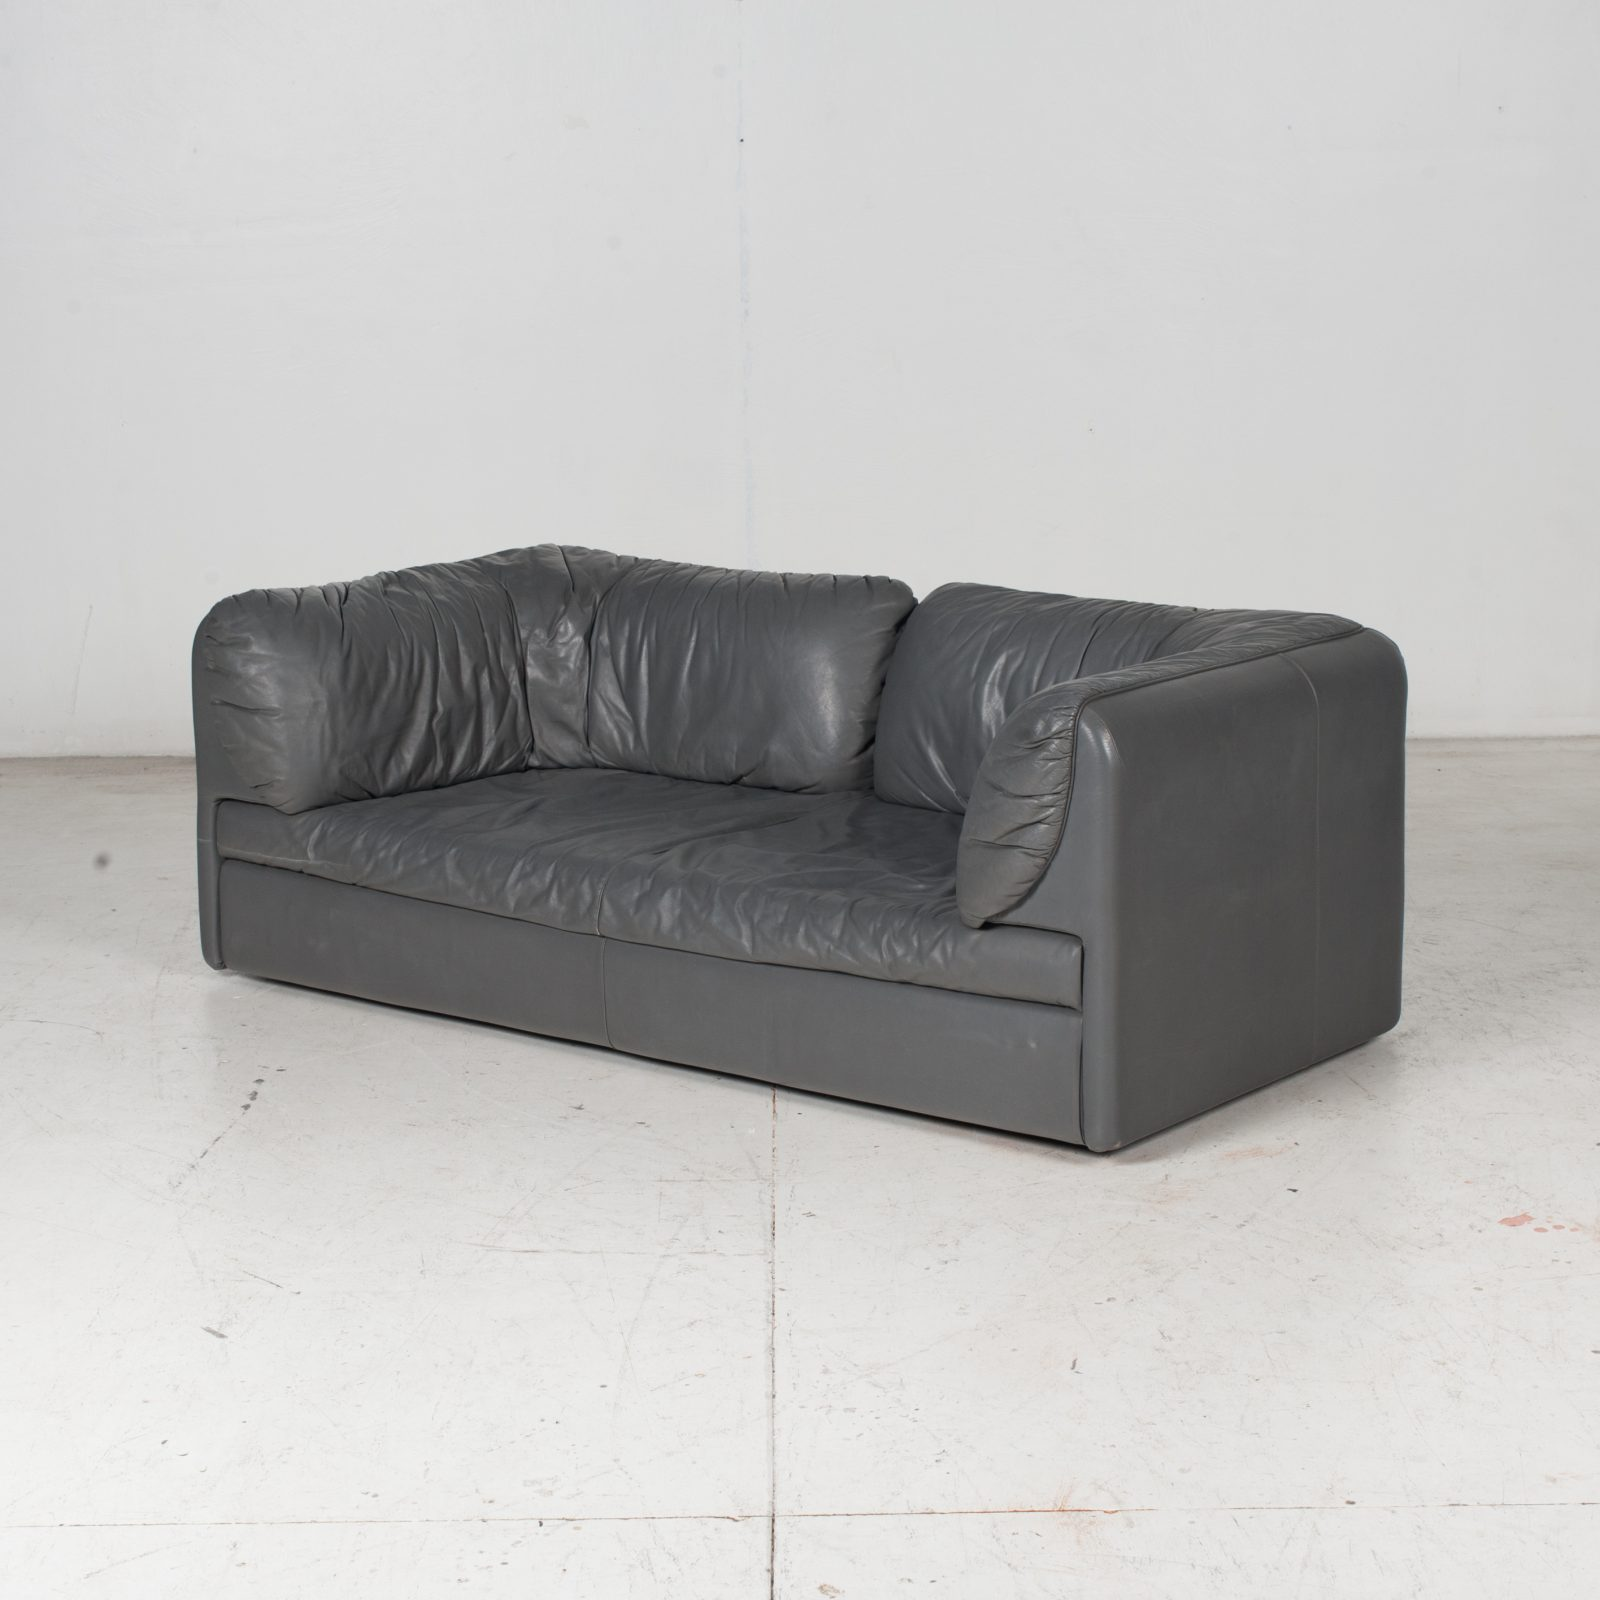 Model Pacific 2.5 Seat Sofa By Cini Boeri For Arflex In Grey Leather, 1980s, Italy High Res Hero